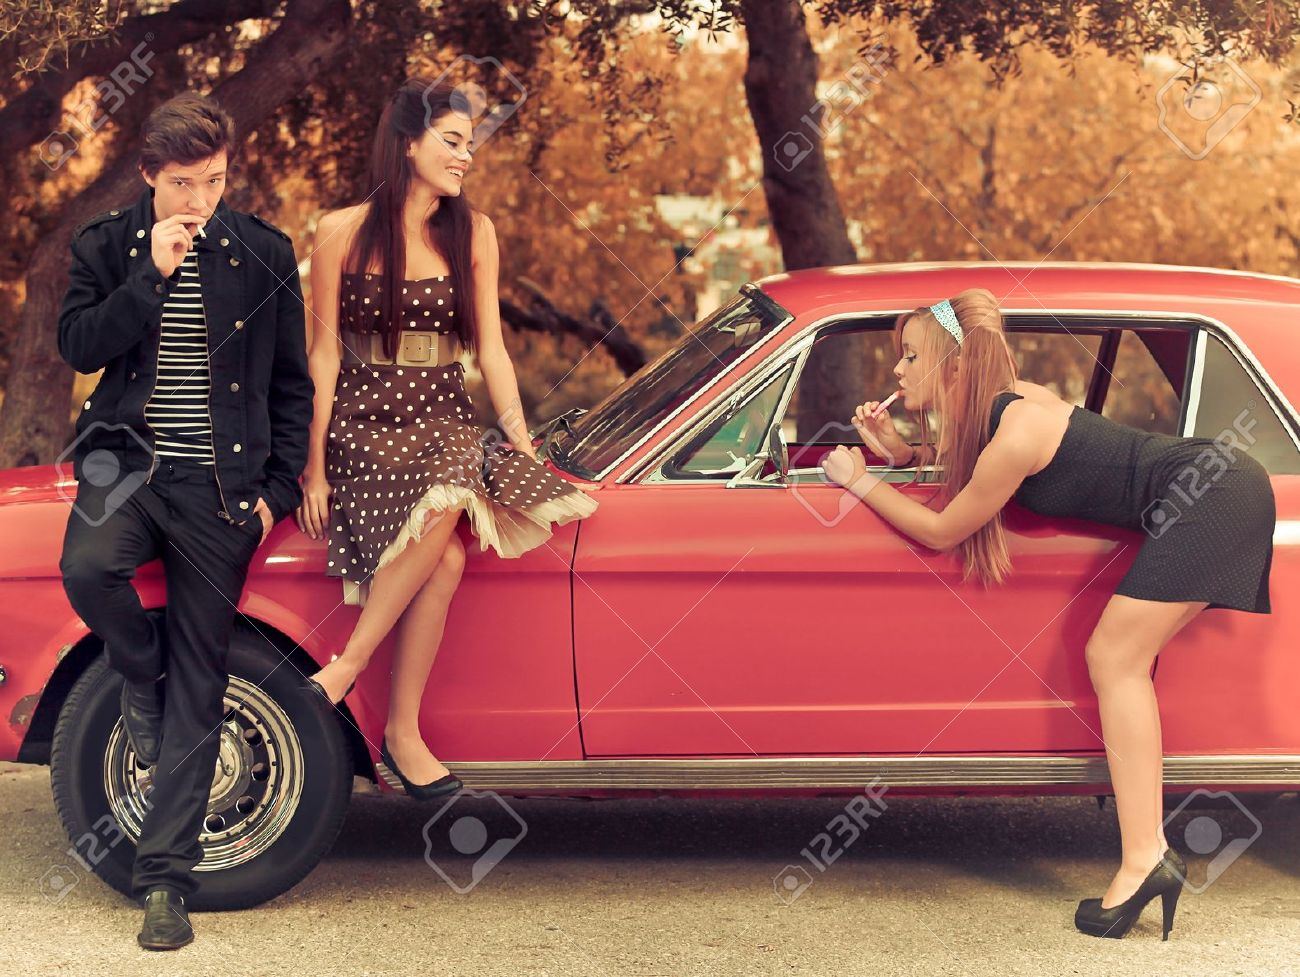 60s Or 50s Style Image Young People With Car Stock Photo, Picture ...